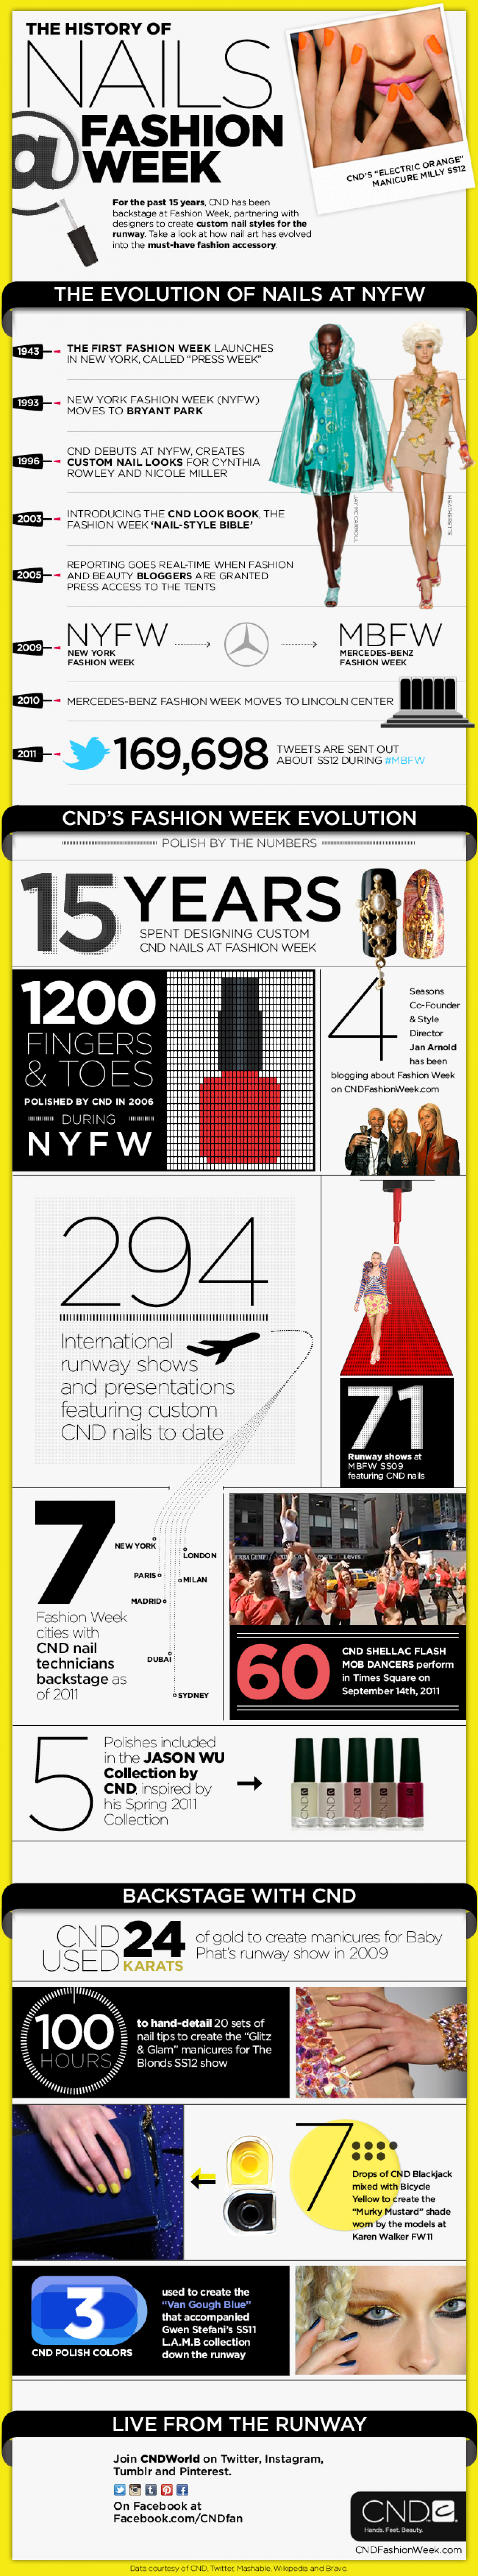 History of Nails at Fashion Week Infographic